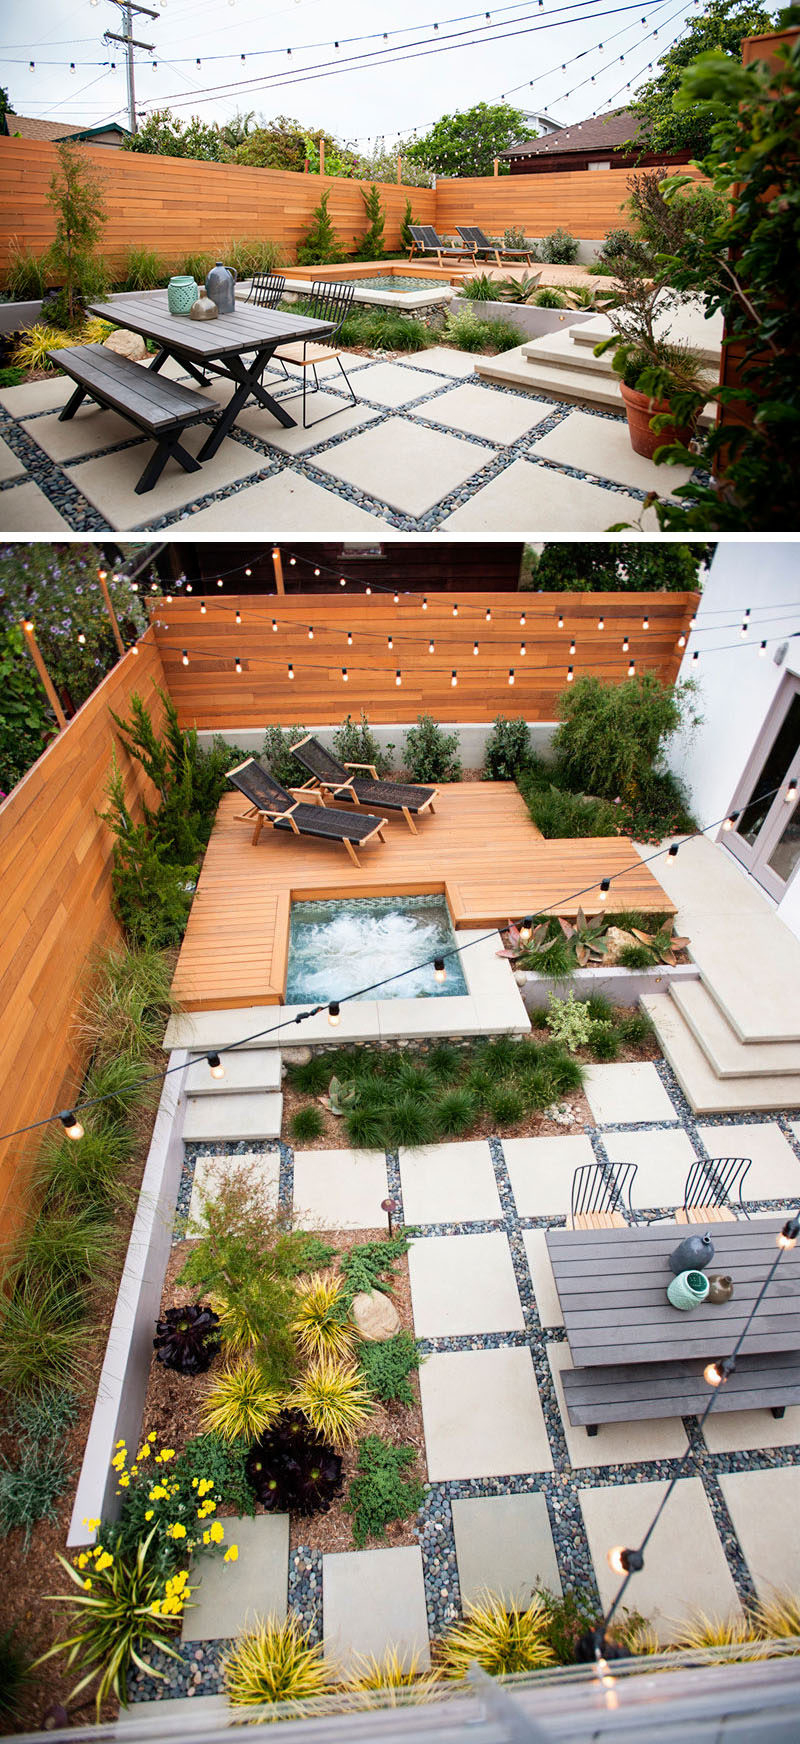 Landscaping Design Ideas 11 Backyards Designed For Entertaining intended for 13 Genius Designs of How to Makeover Ideas For Backyard